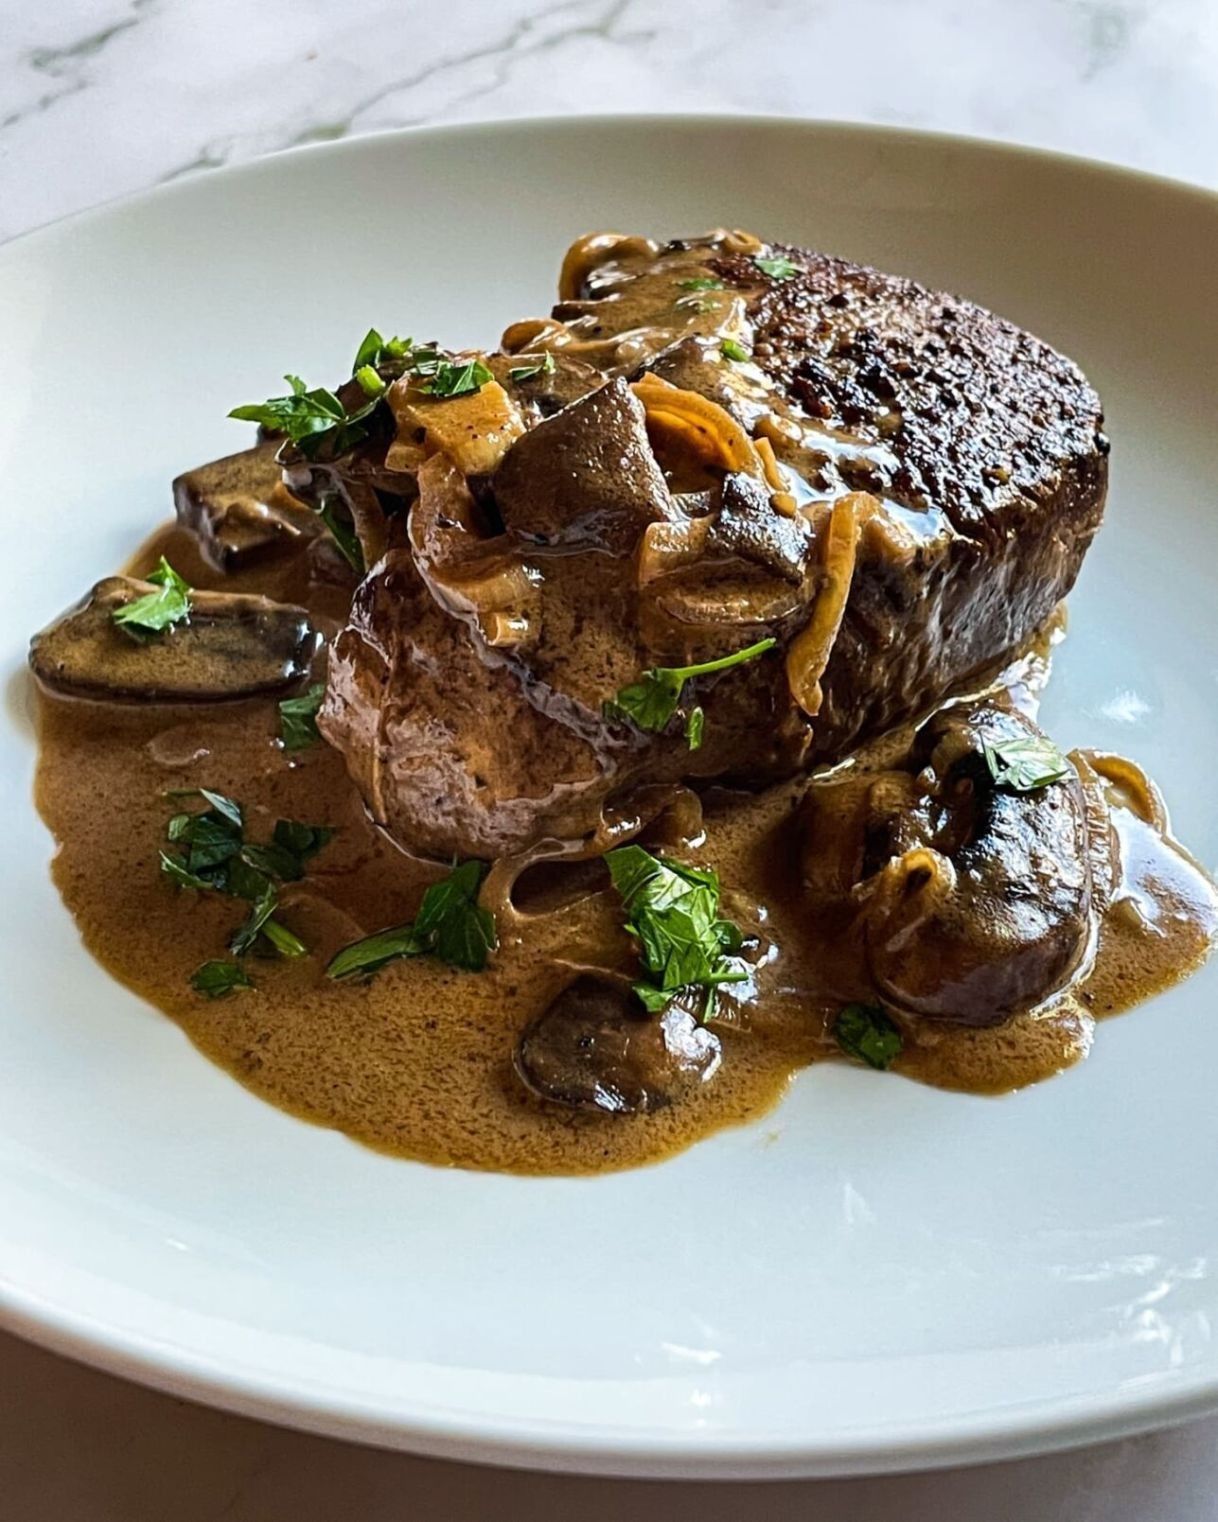 The Kitchn: Steak Diane is the classic steak dinner you'll fall in love with